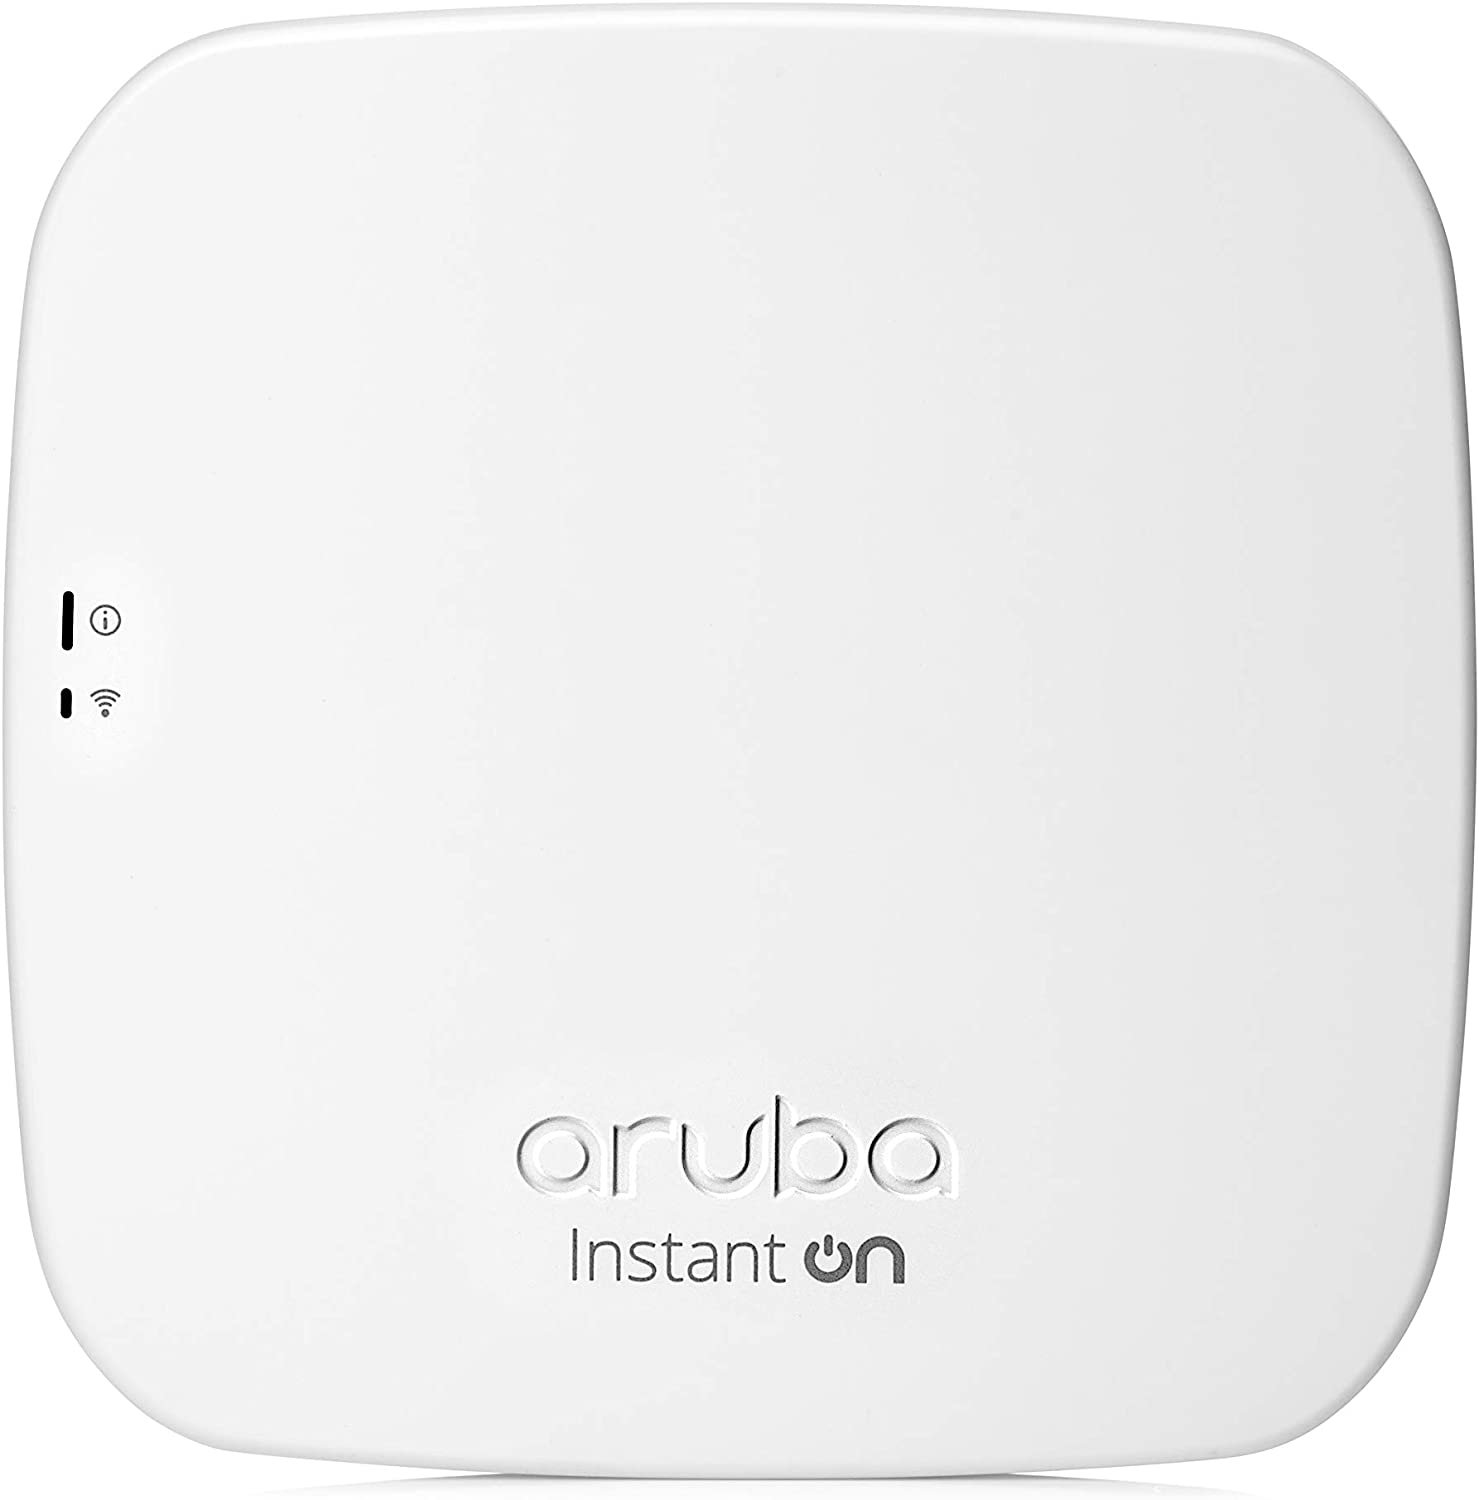 Aruba Instant On AP12 3x3 WiFi Access Point | US Model | Power Source not Included (R2X00A)